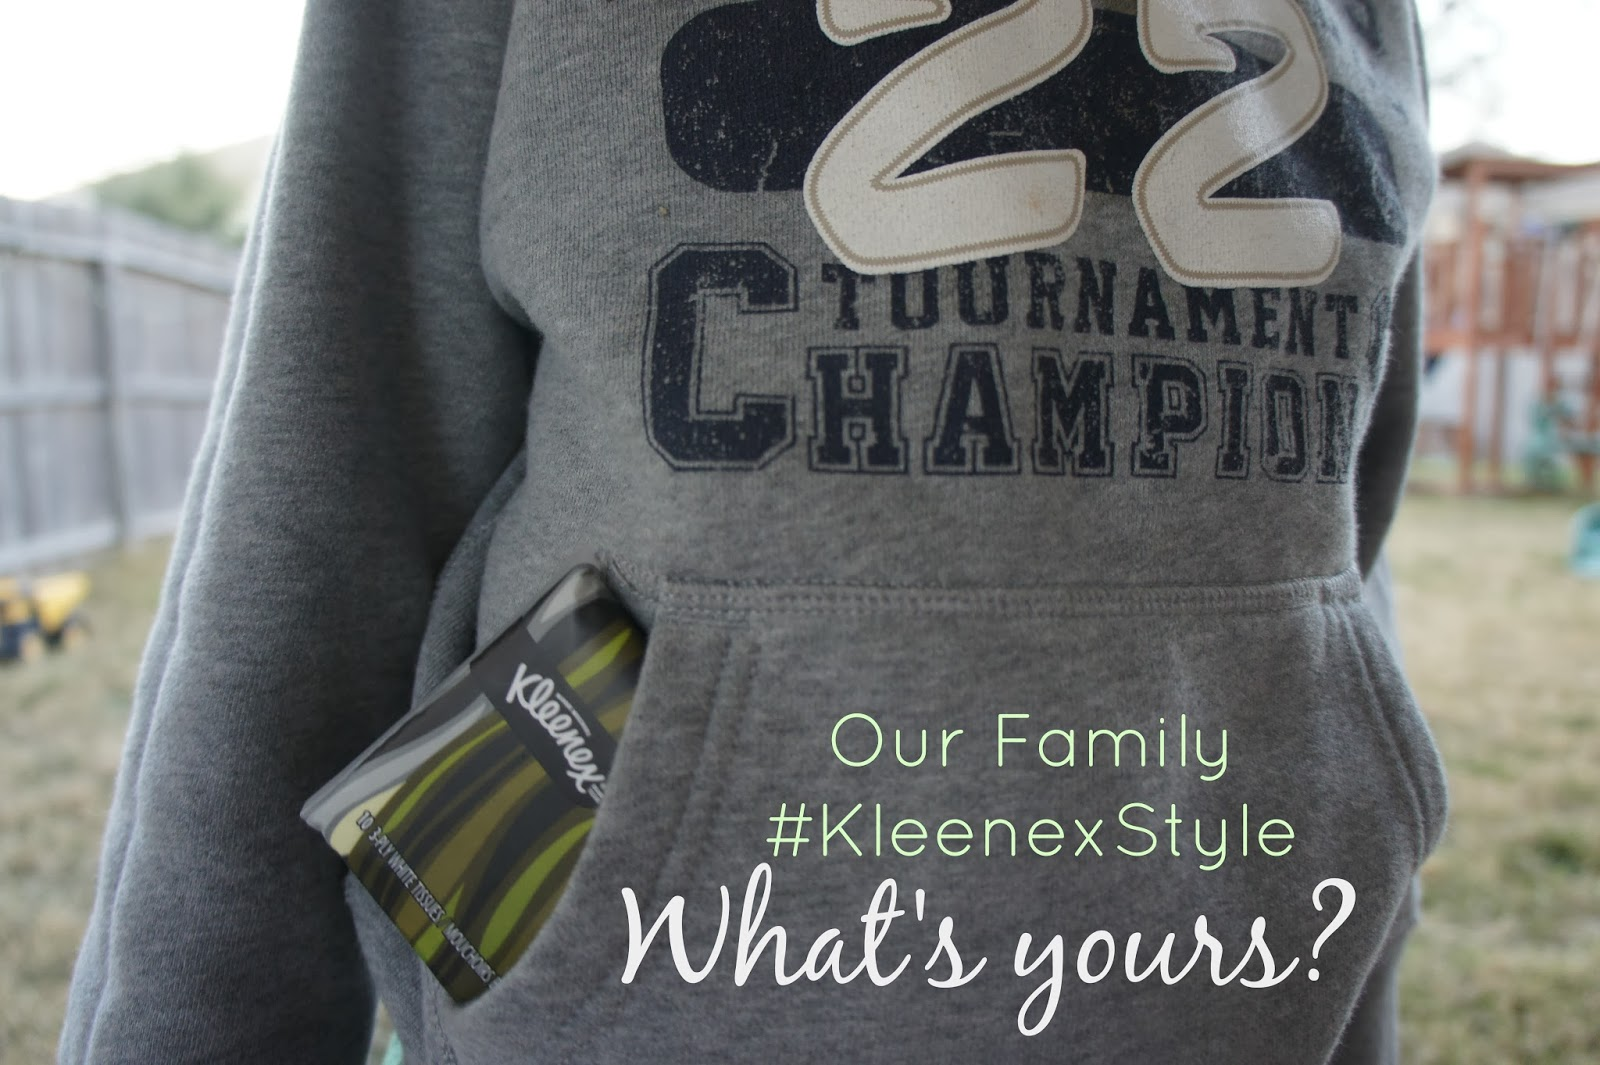 Our Family & Kids #KleenexStyle - What's yours? #sp